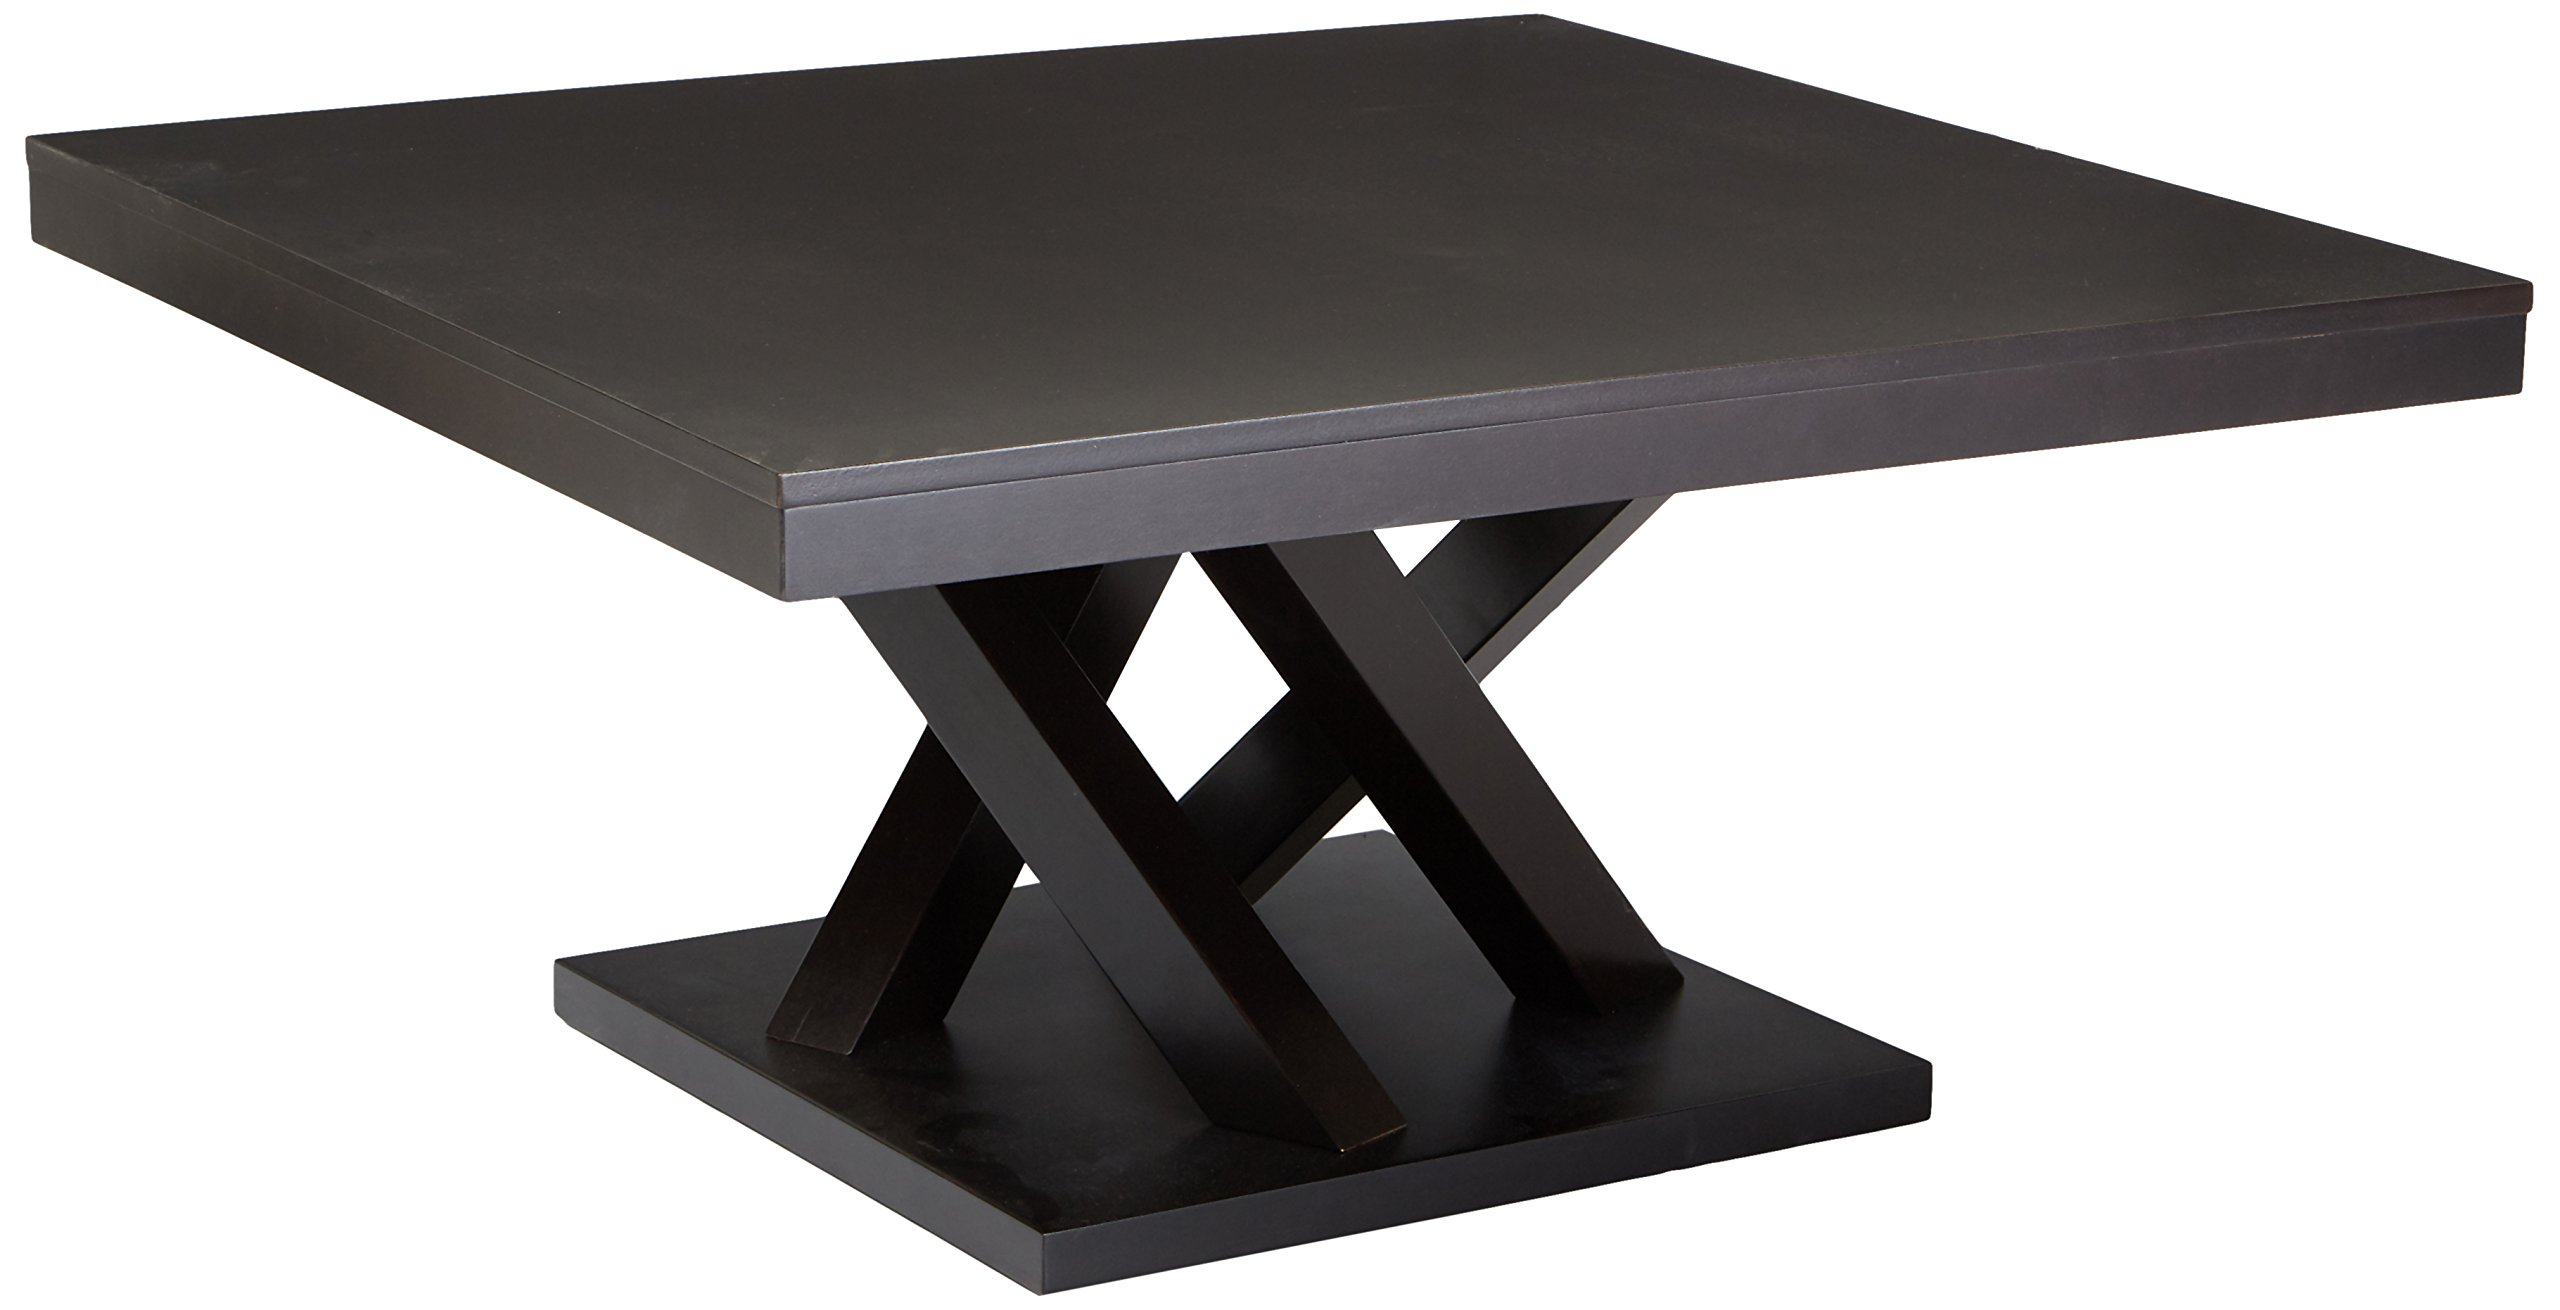 Baxton Studio Everdon Modern Coffee Table, Dark Brown by Baxton Studio